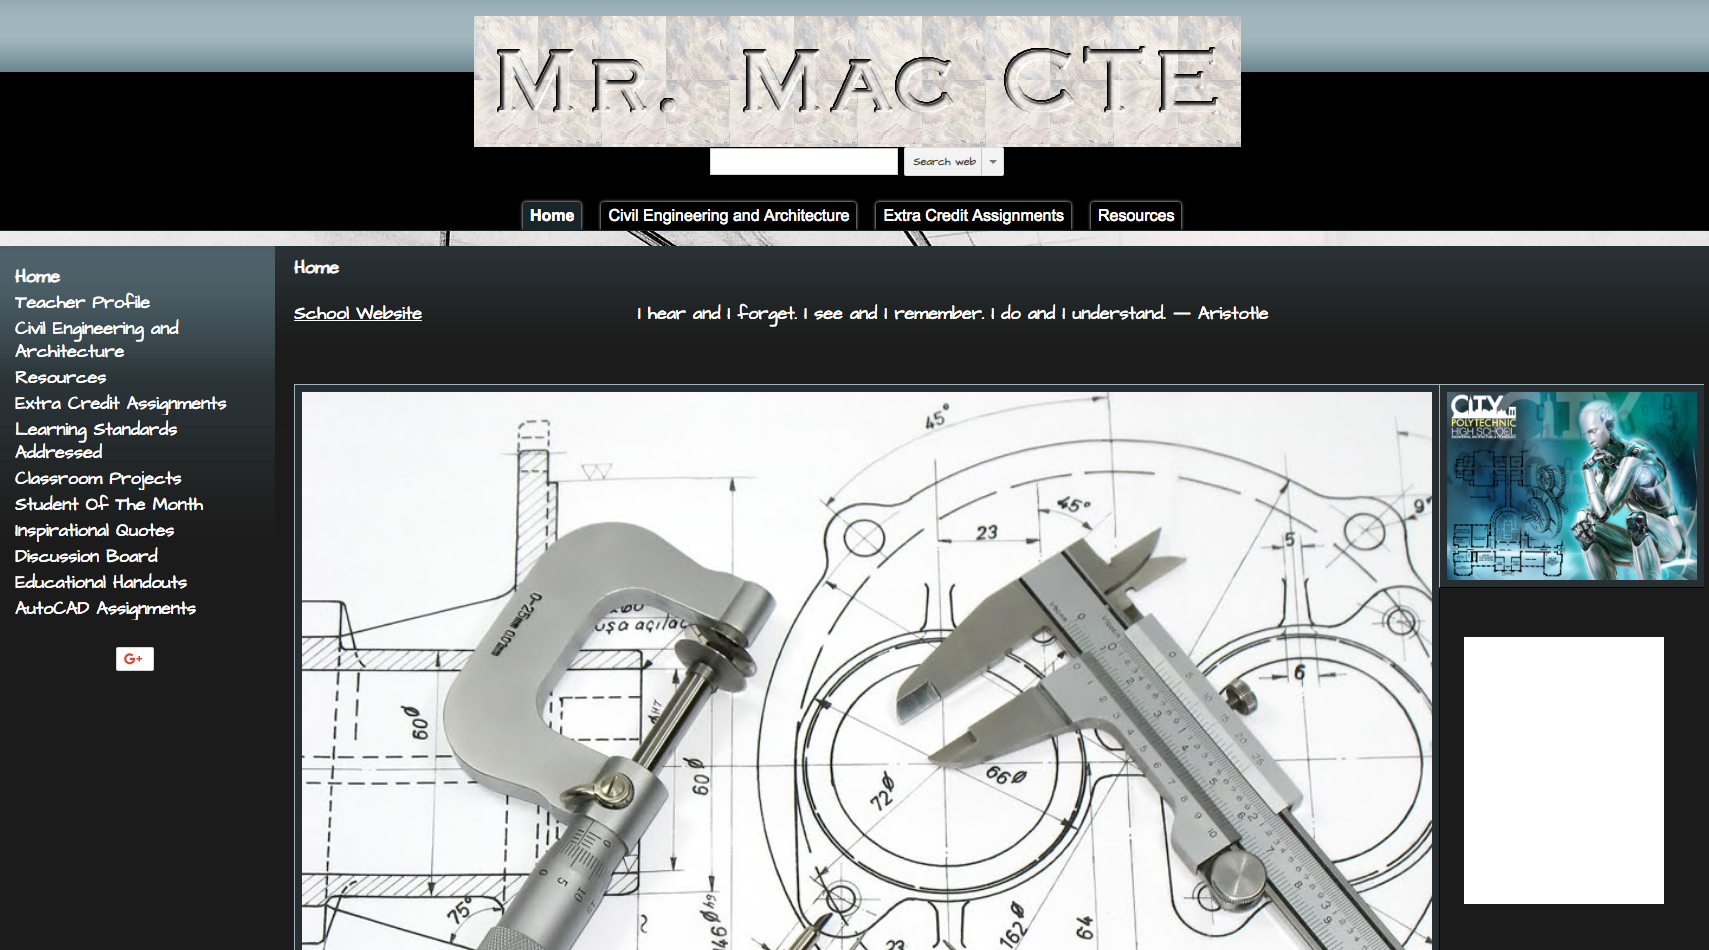 Home page of Engineering and Architecture web site